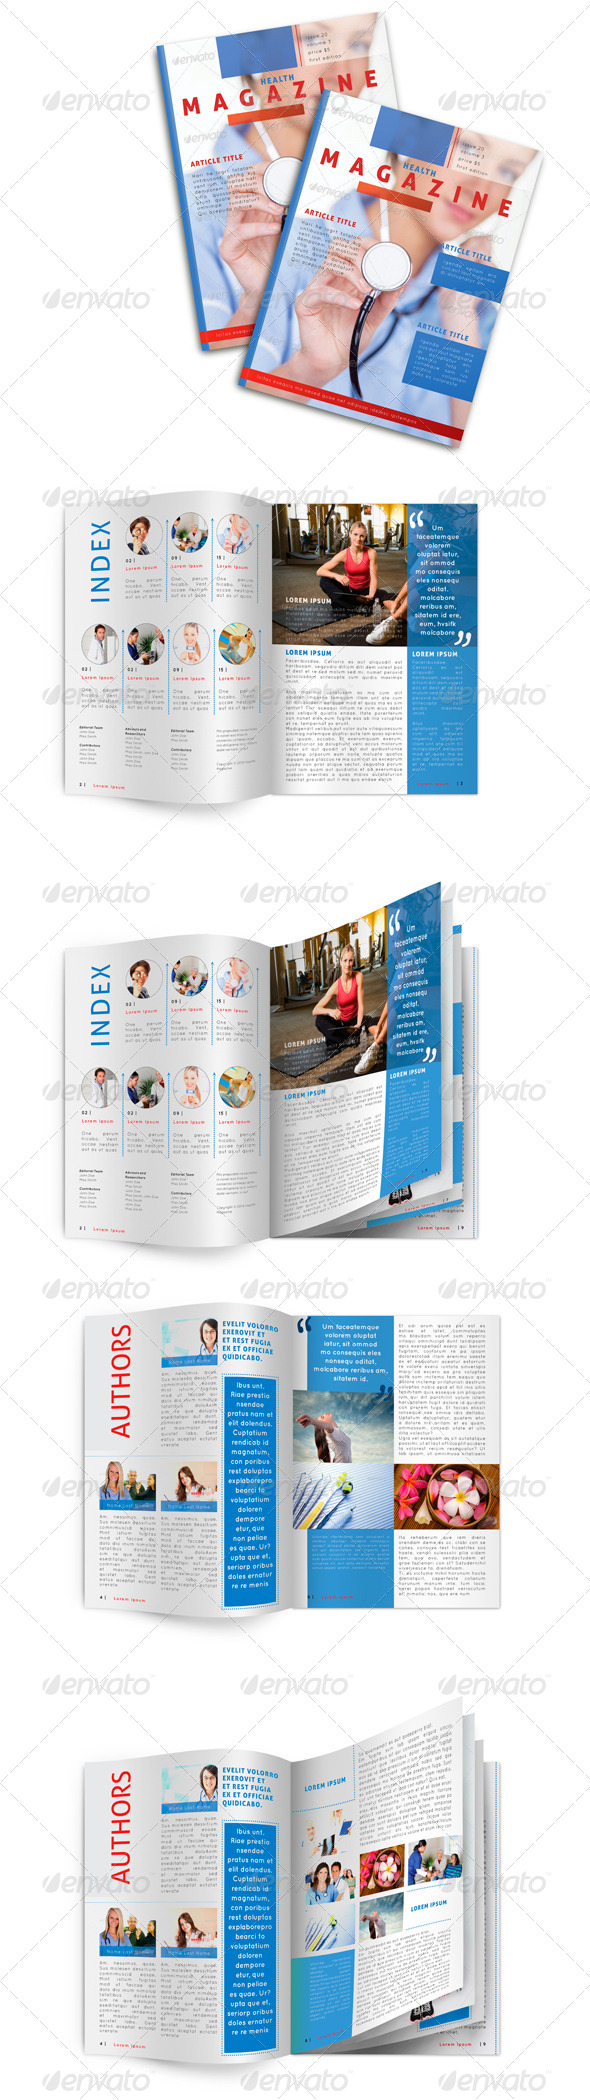 Medical Magazine Template - Magazines Print Templates